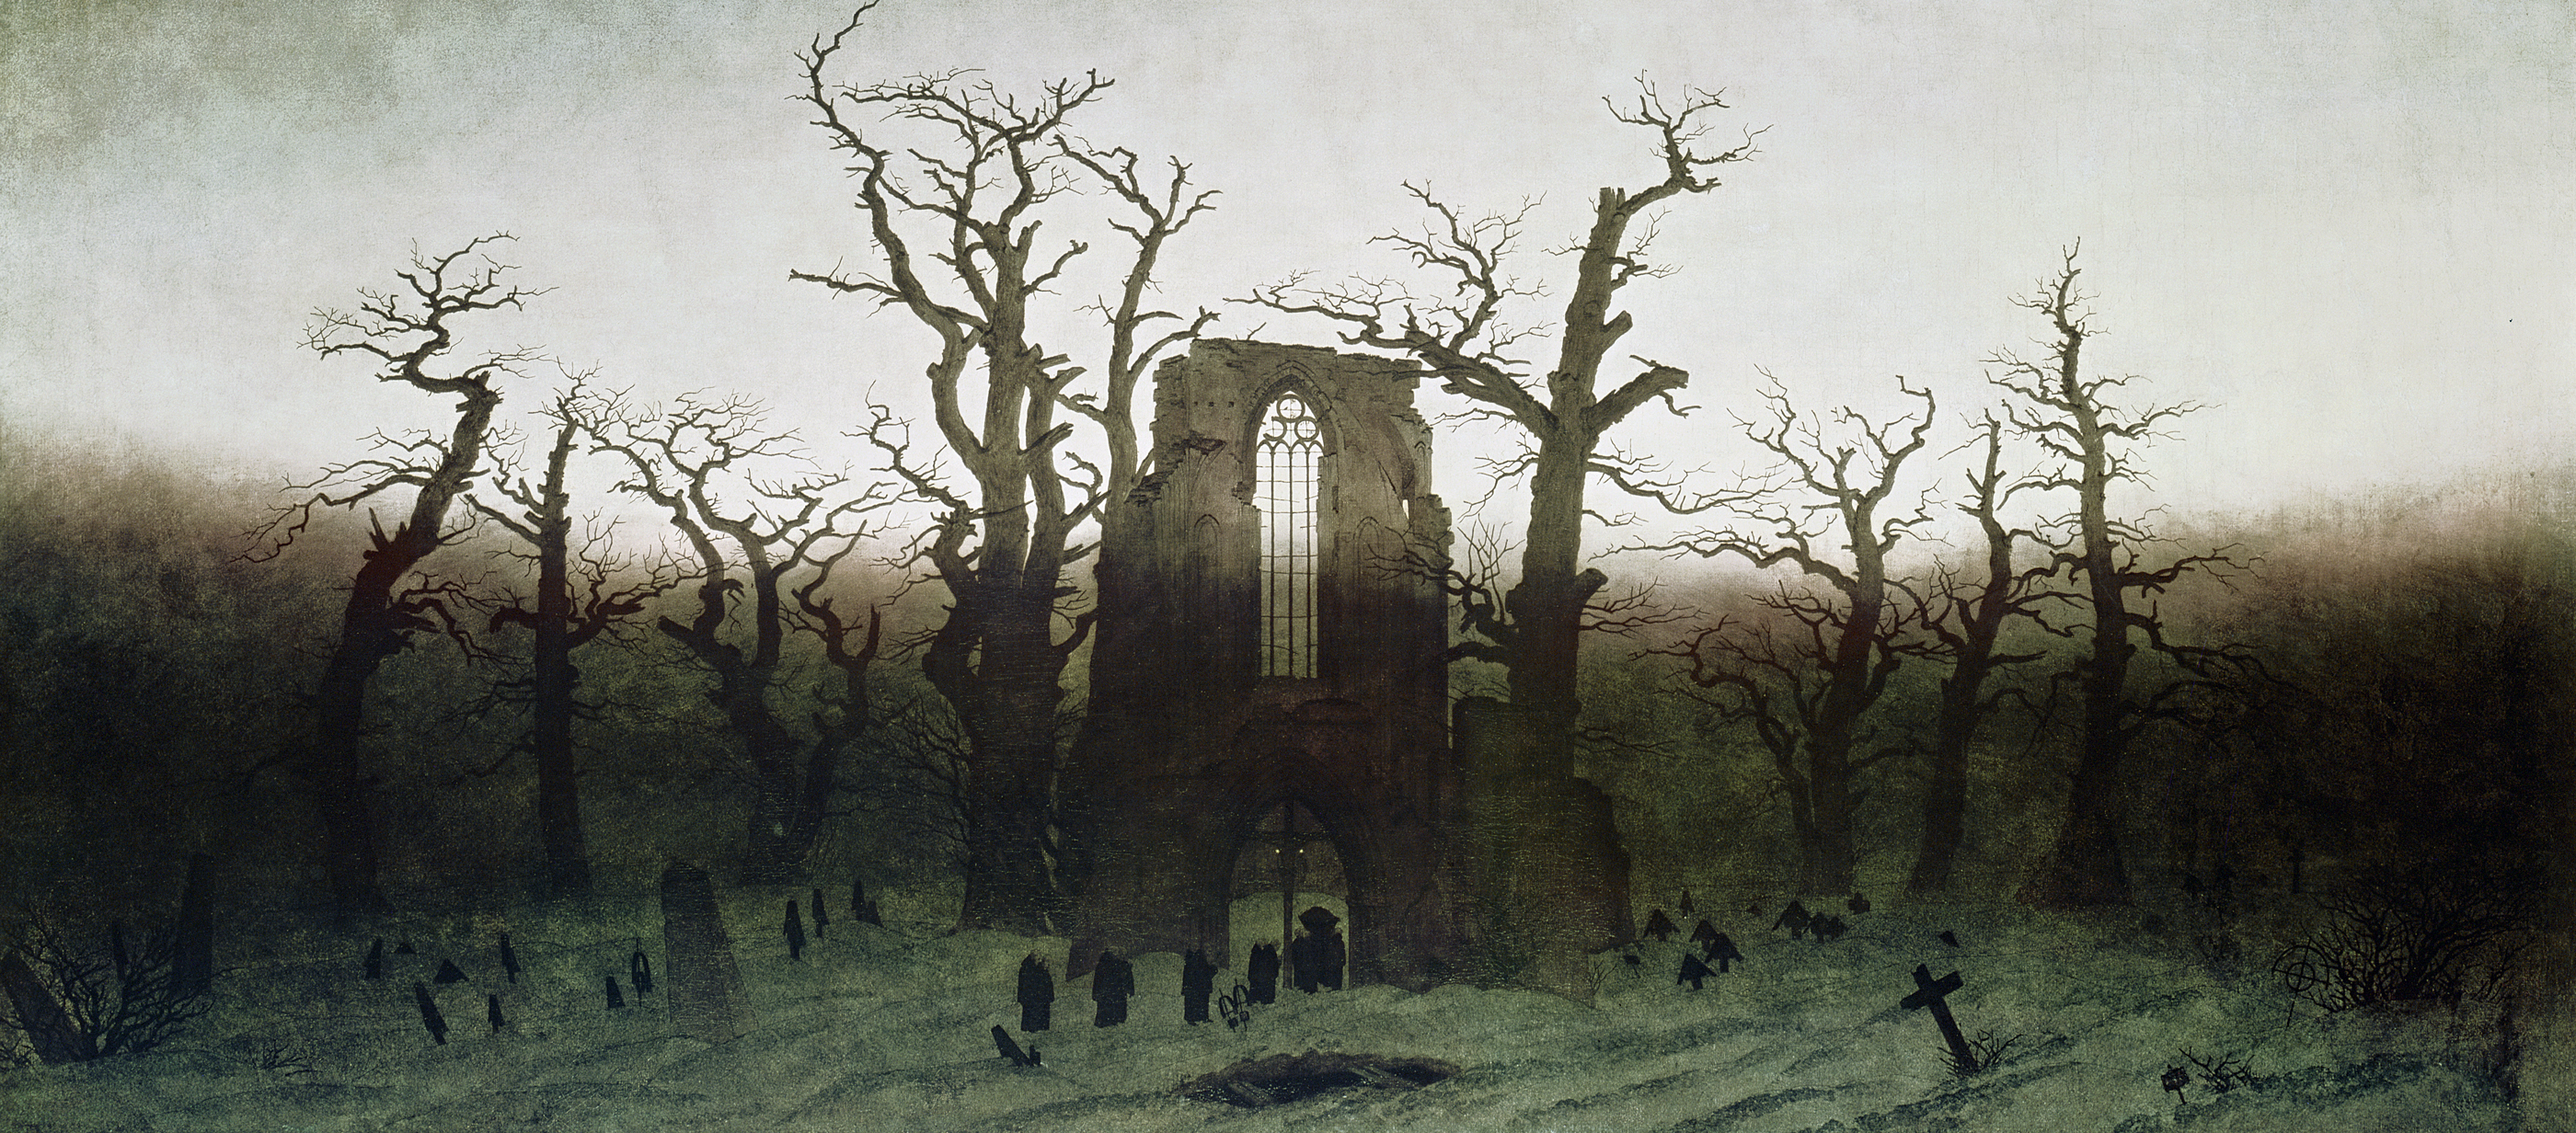 Painting of a ruined abbey in an oak forest.